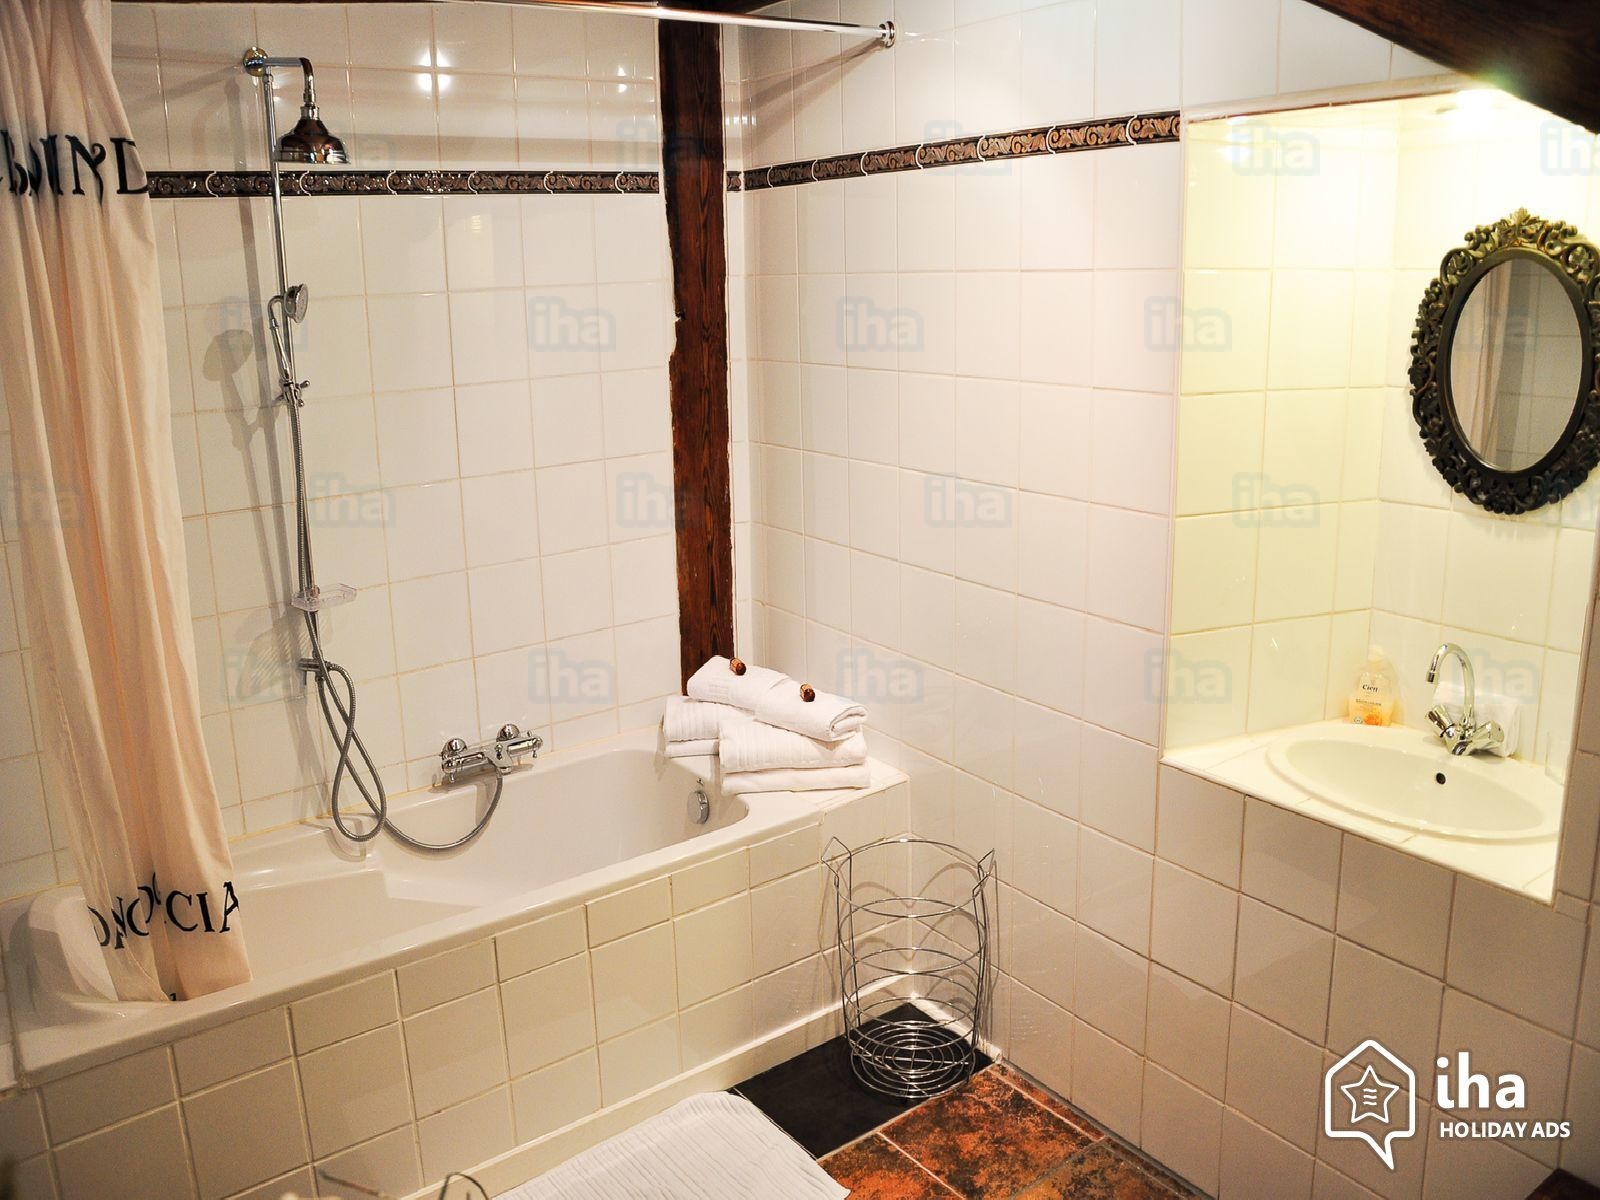 Avoid shower doors for designing small bathrooms